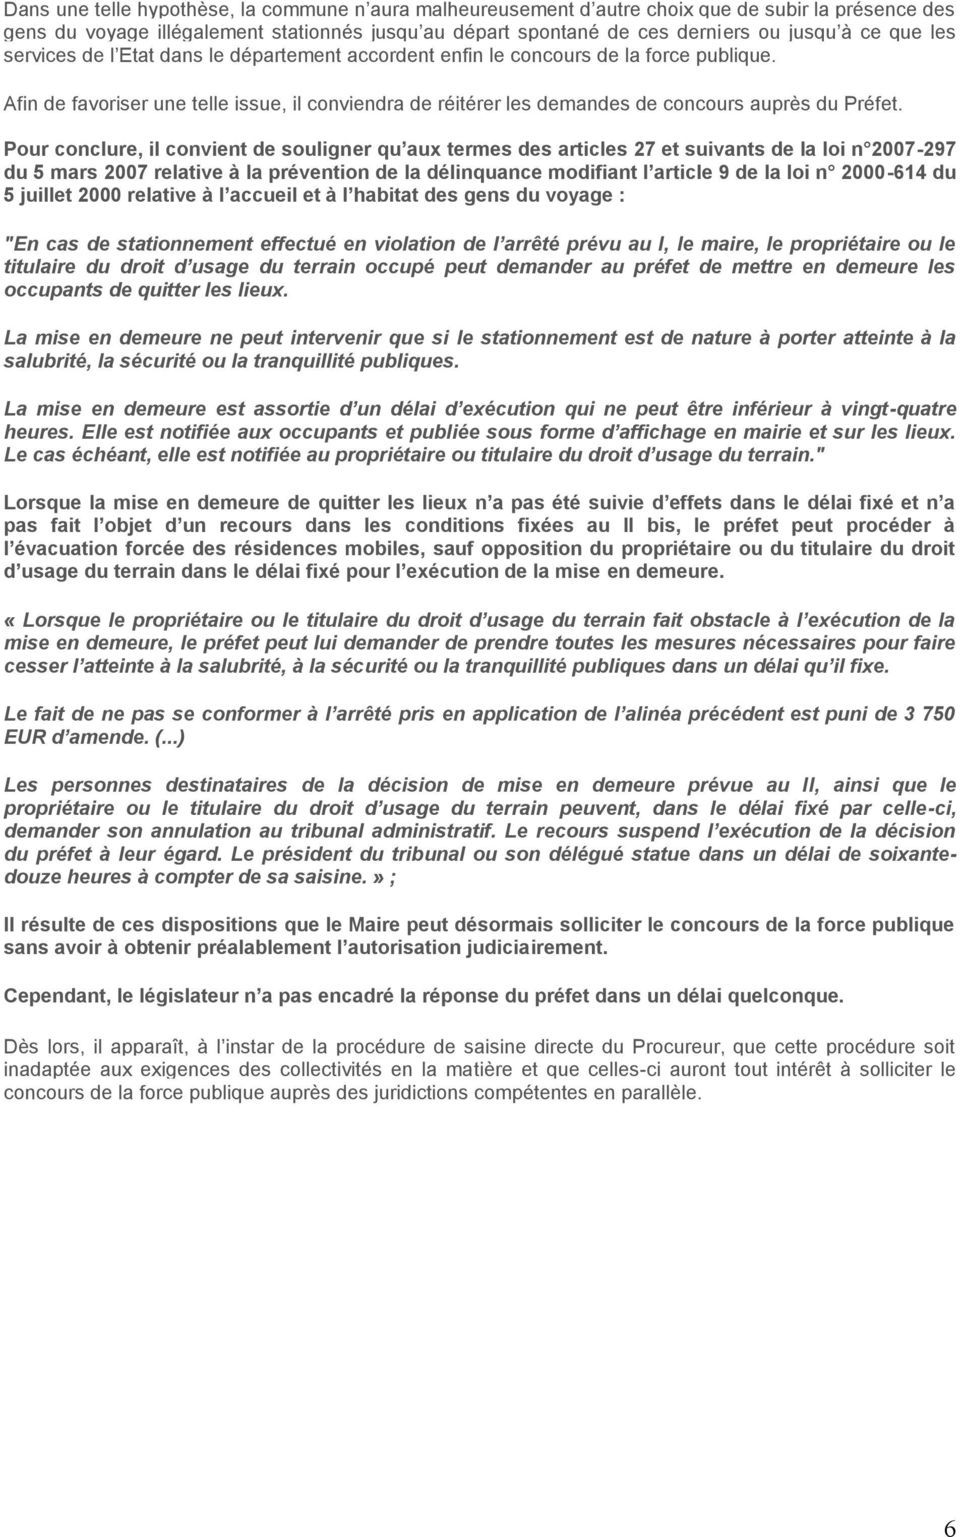 Pour conclure, il convient de souligner qu aux termes des articles 27 et suivants de la loi n 2007-297 du 5 mars 2007 relative à la prévention de la délinquance modifiant l article 9 de la loi n